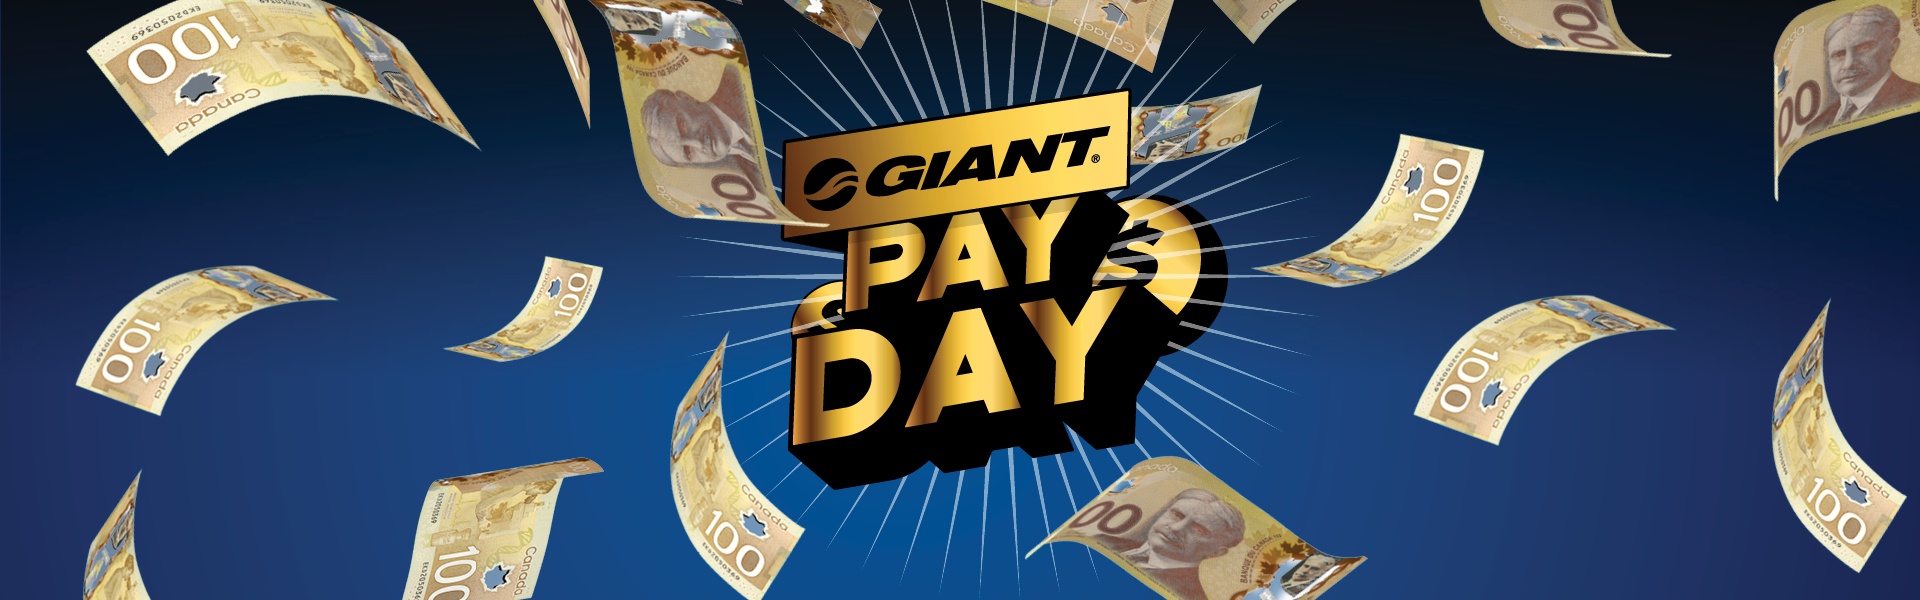 Giant Pay Day!